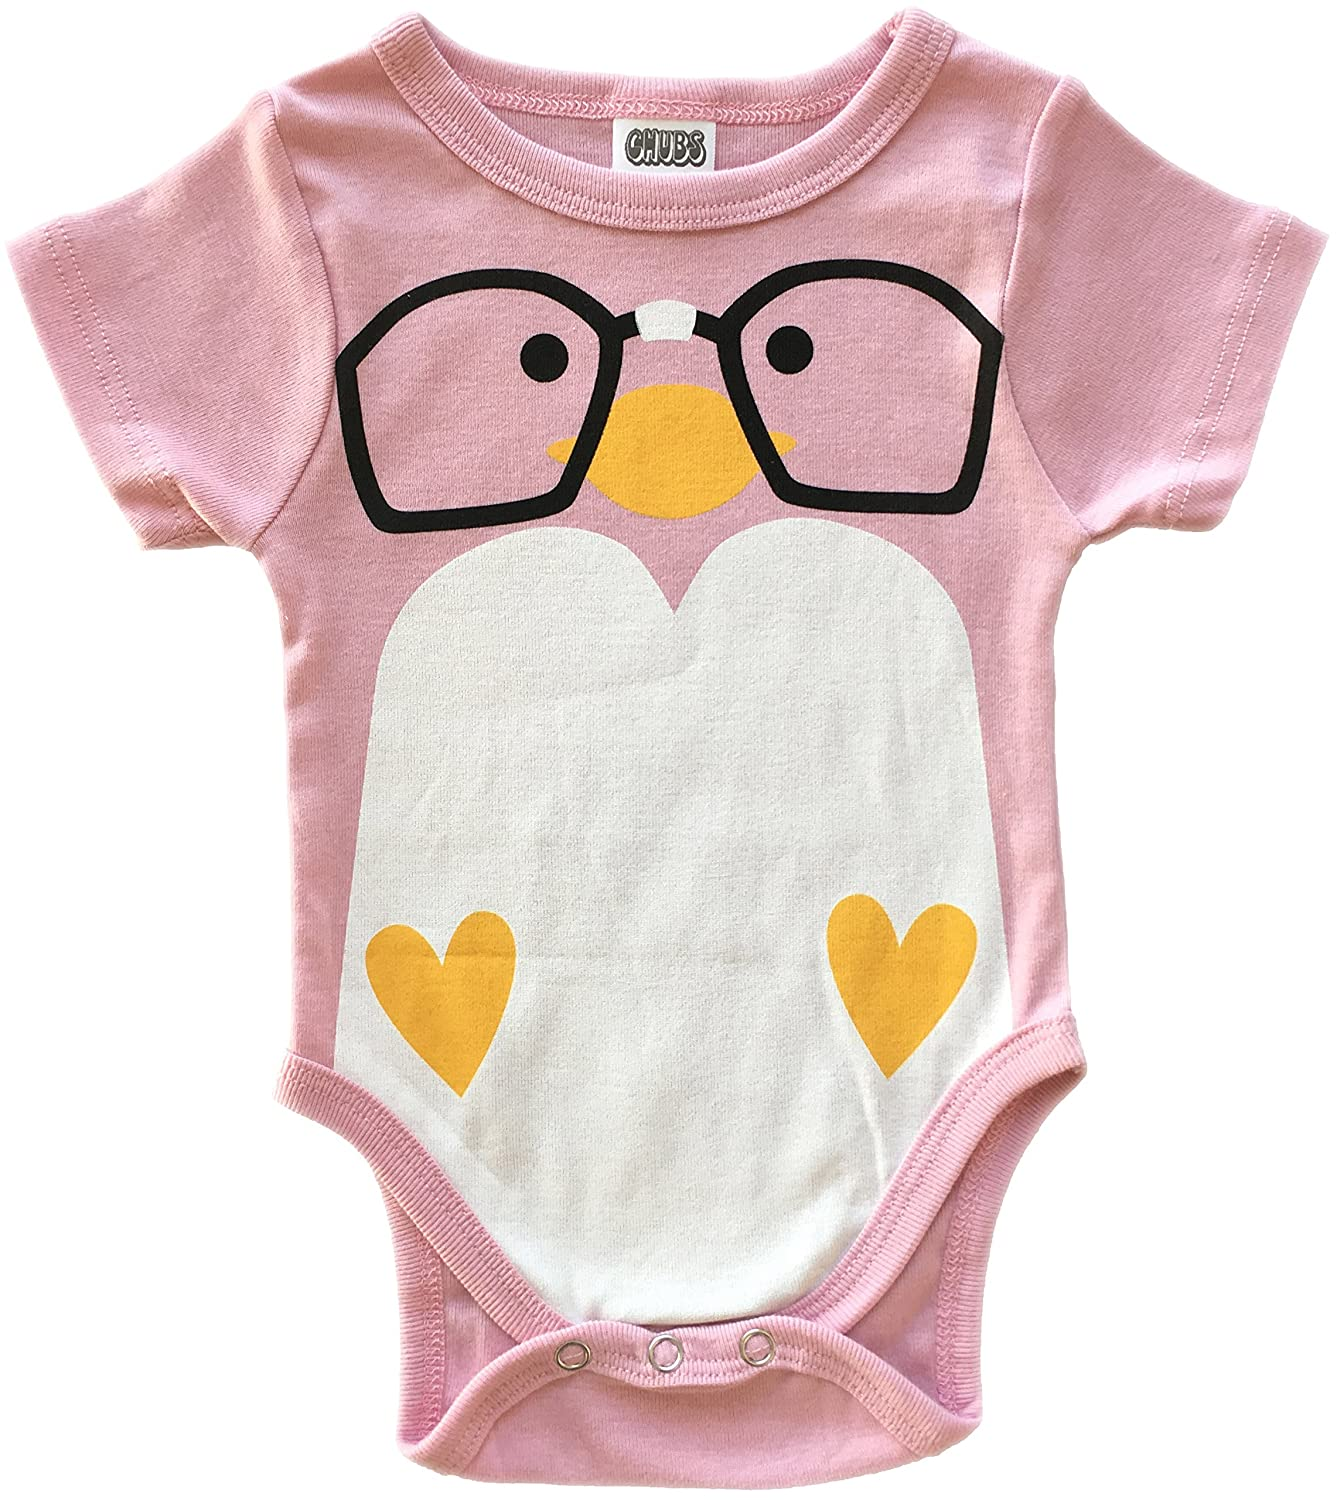 aa54d590a Amazon.com: CHUBS Nerd Bird, Unique Baby Onesies, Baby Products Made in The  USA: Clothing